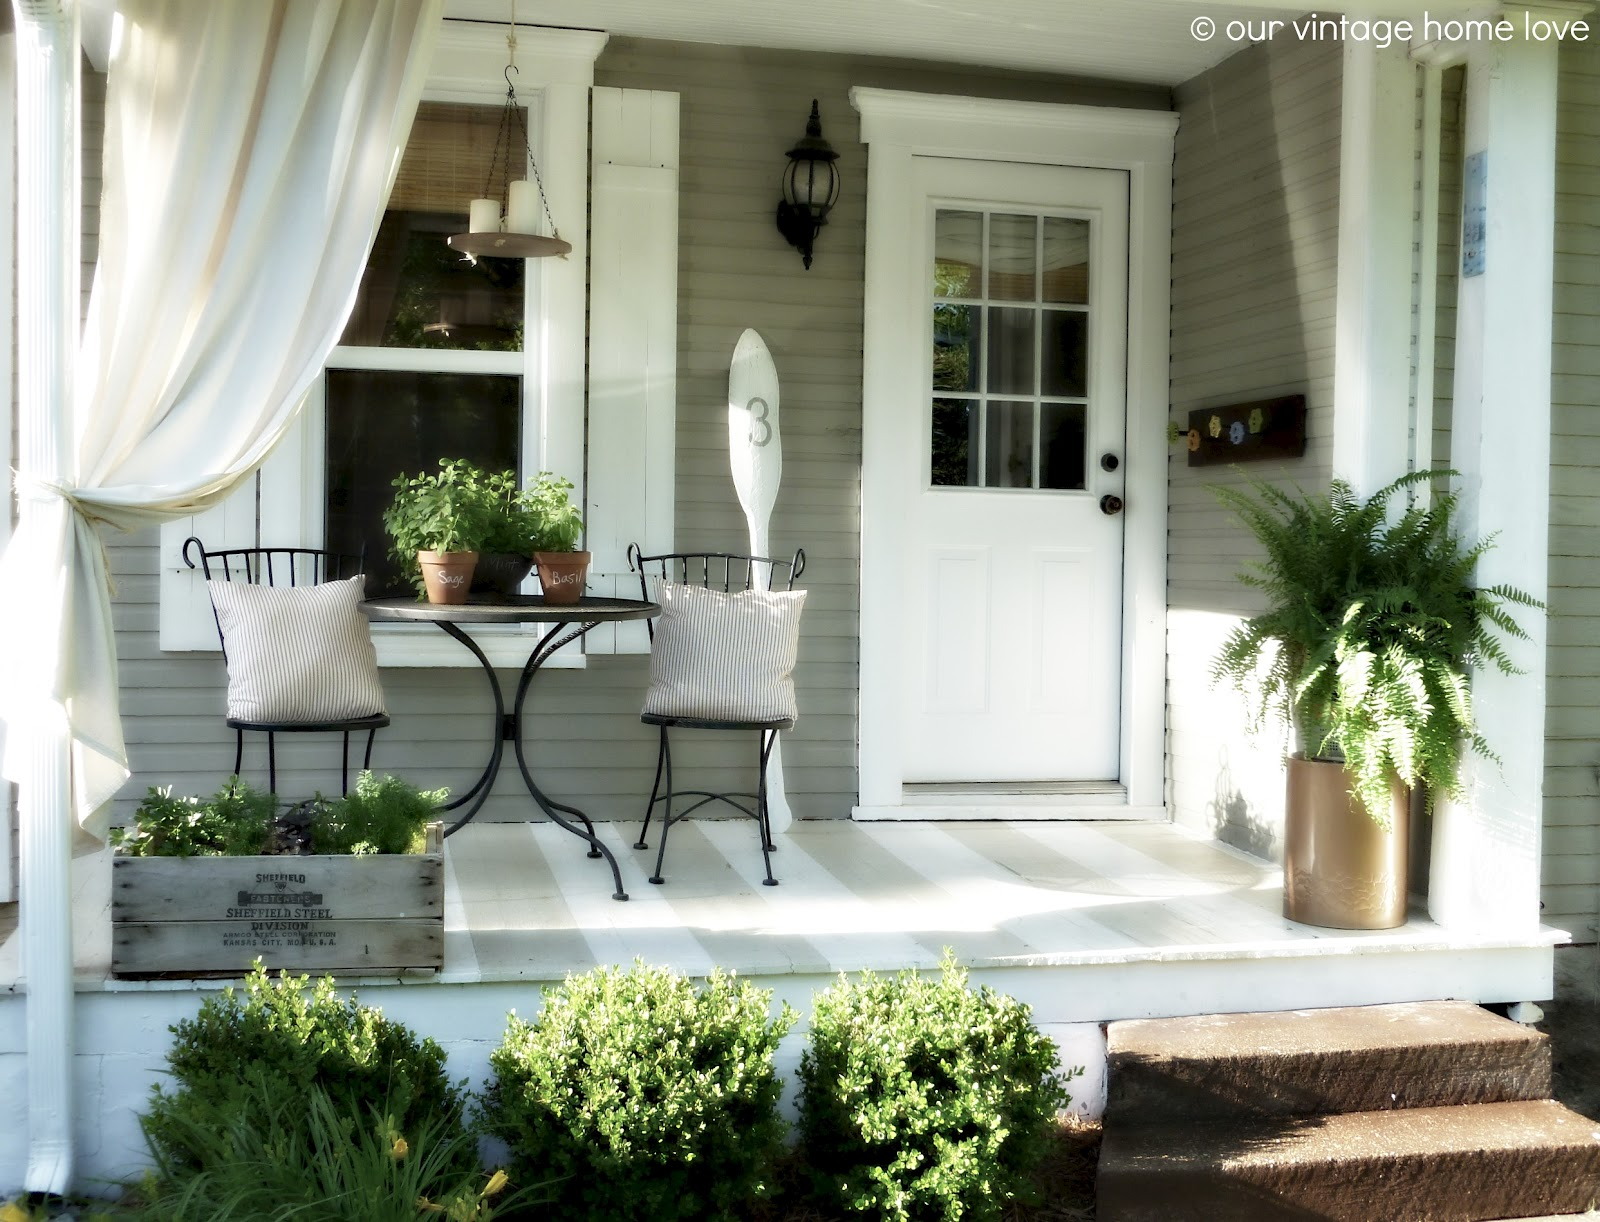 Vintage Home Love Back Side Porch Ideas For Summer And An